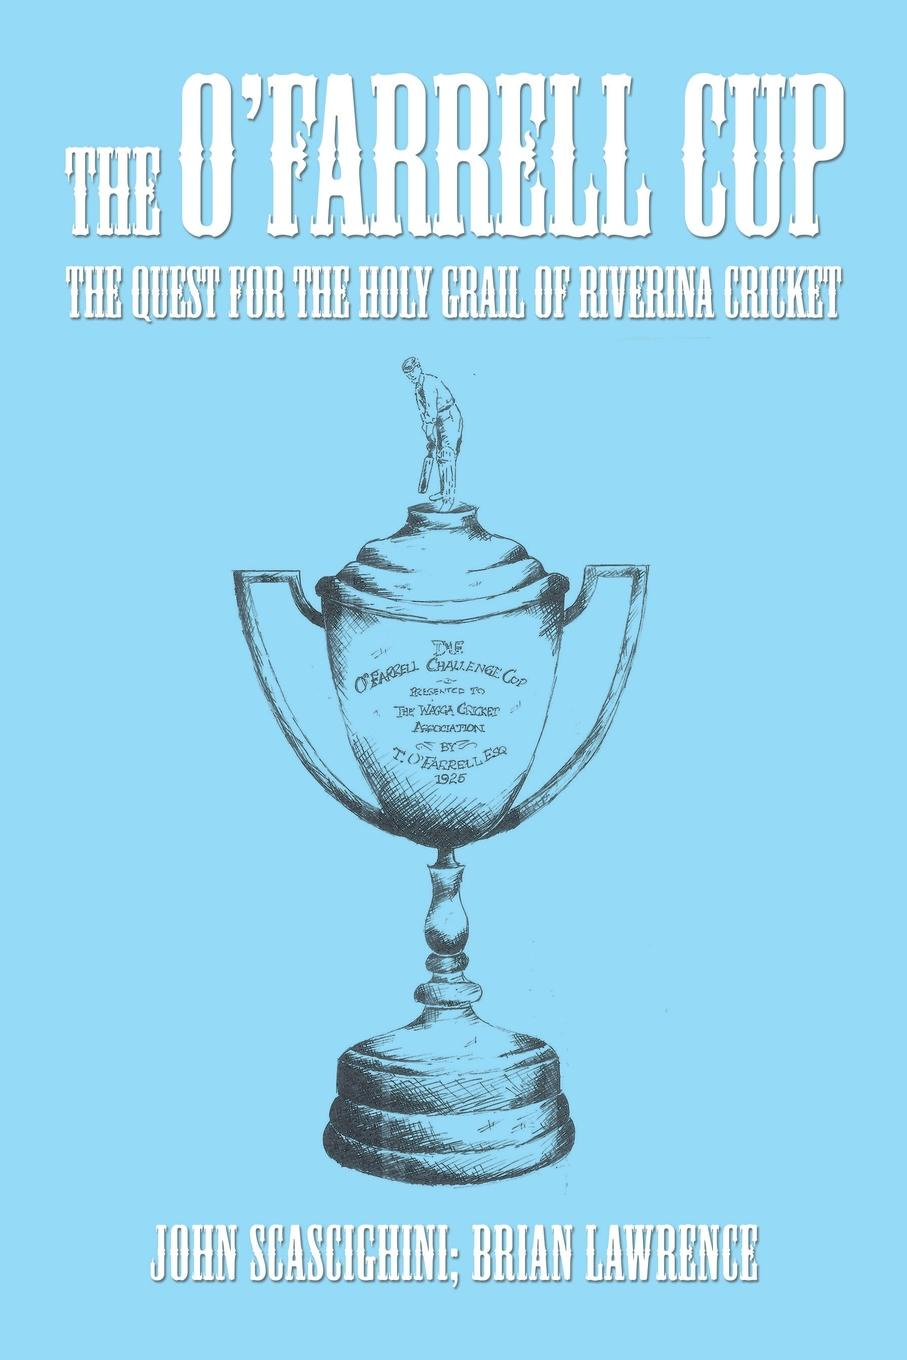 John Scascighini, Brian Lawrence The O'Farrell Cup. The Quest for the Holy Grail of Riverina Cricket larry swedroe e the quest for alpha the holy grail of investing